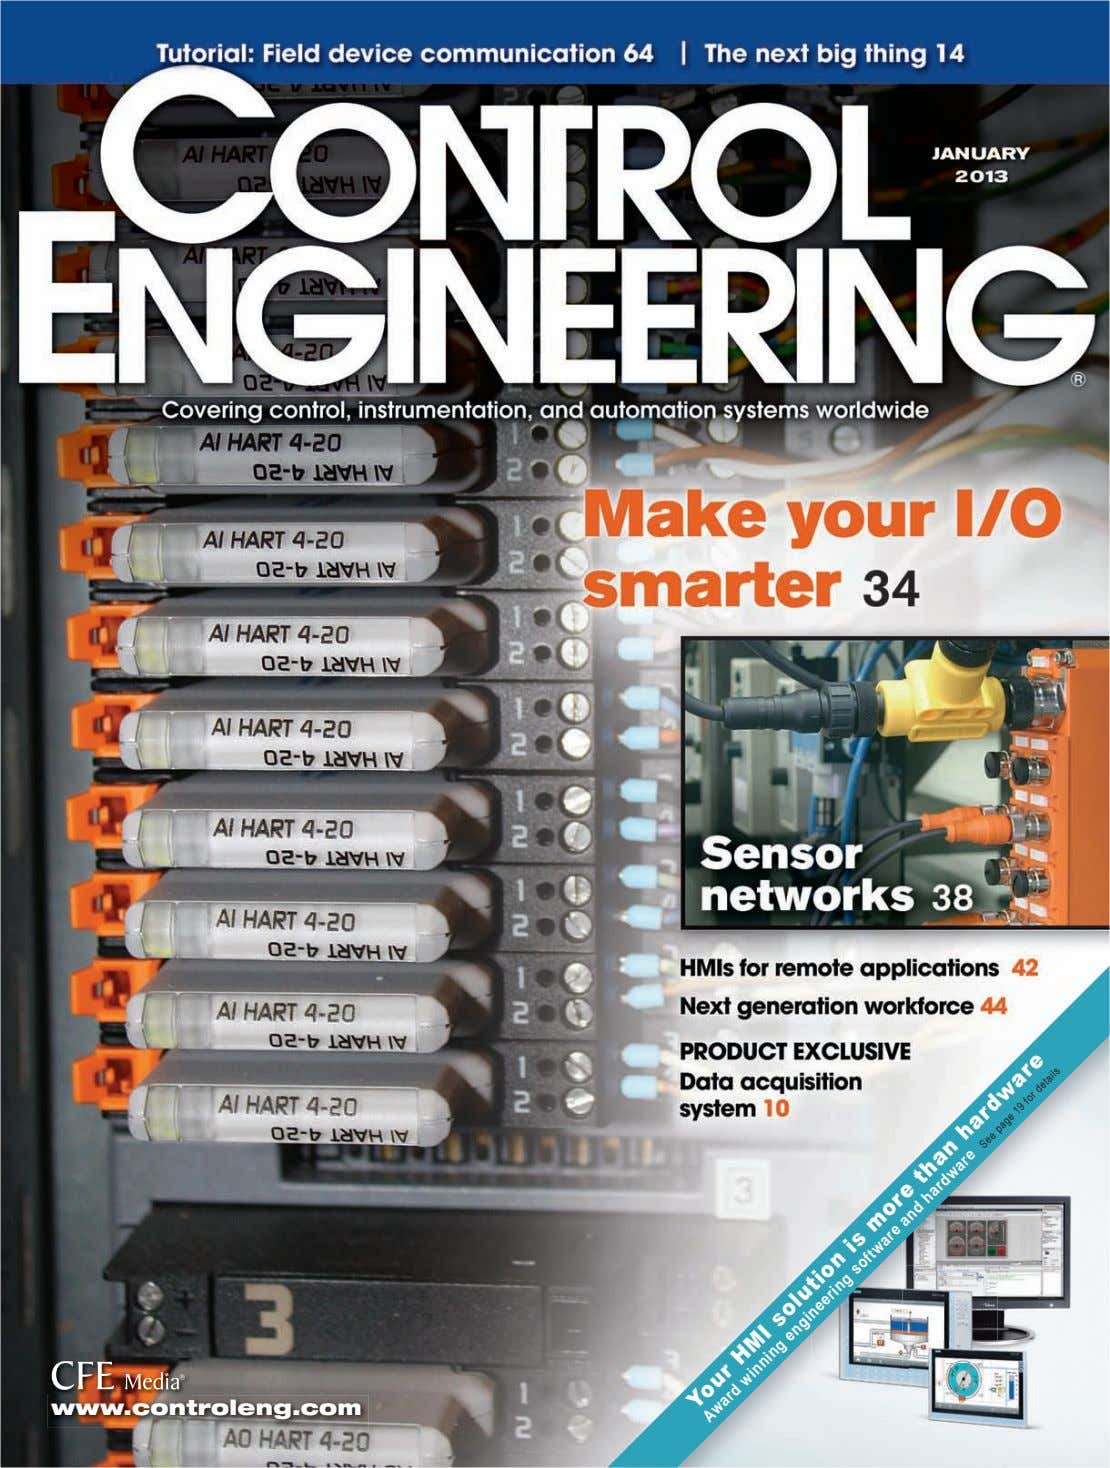 www.controleng.com than hardware HMI engineering is more See page 19 for details Award winning Your